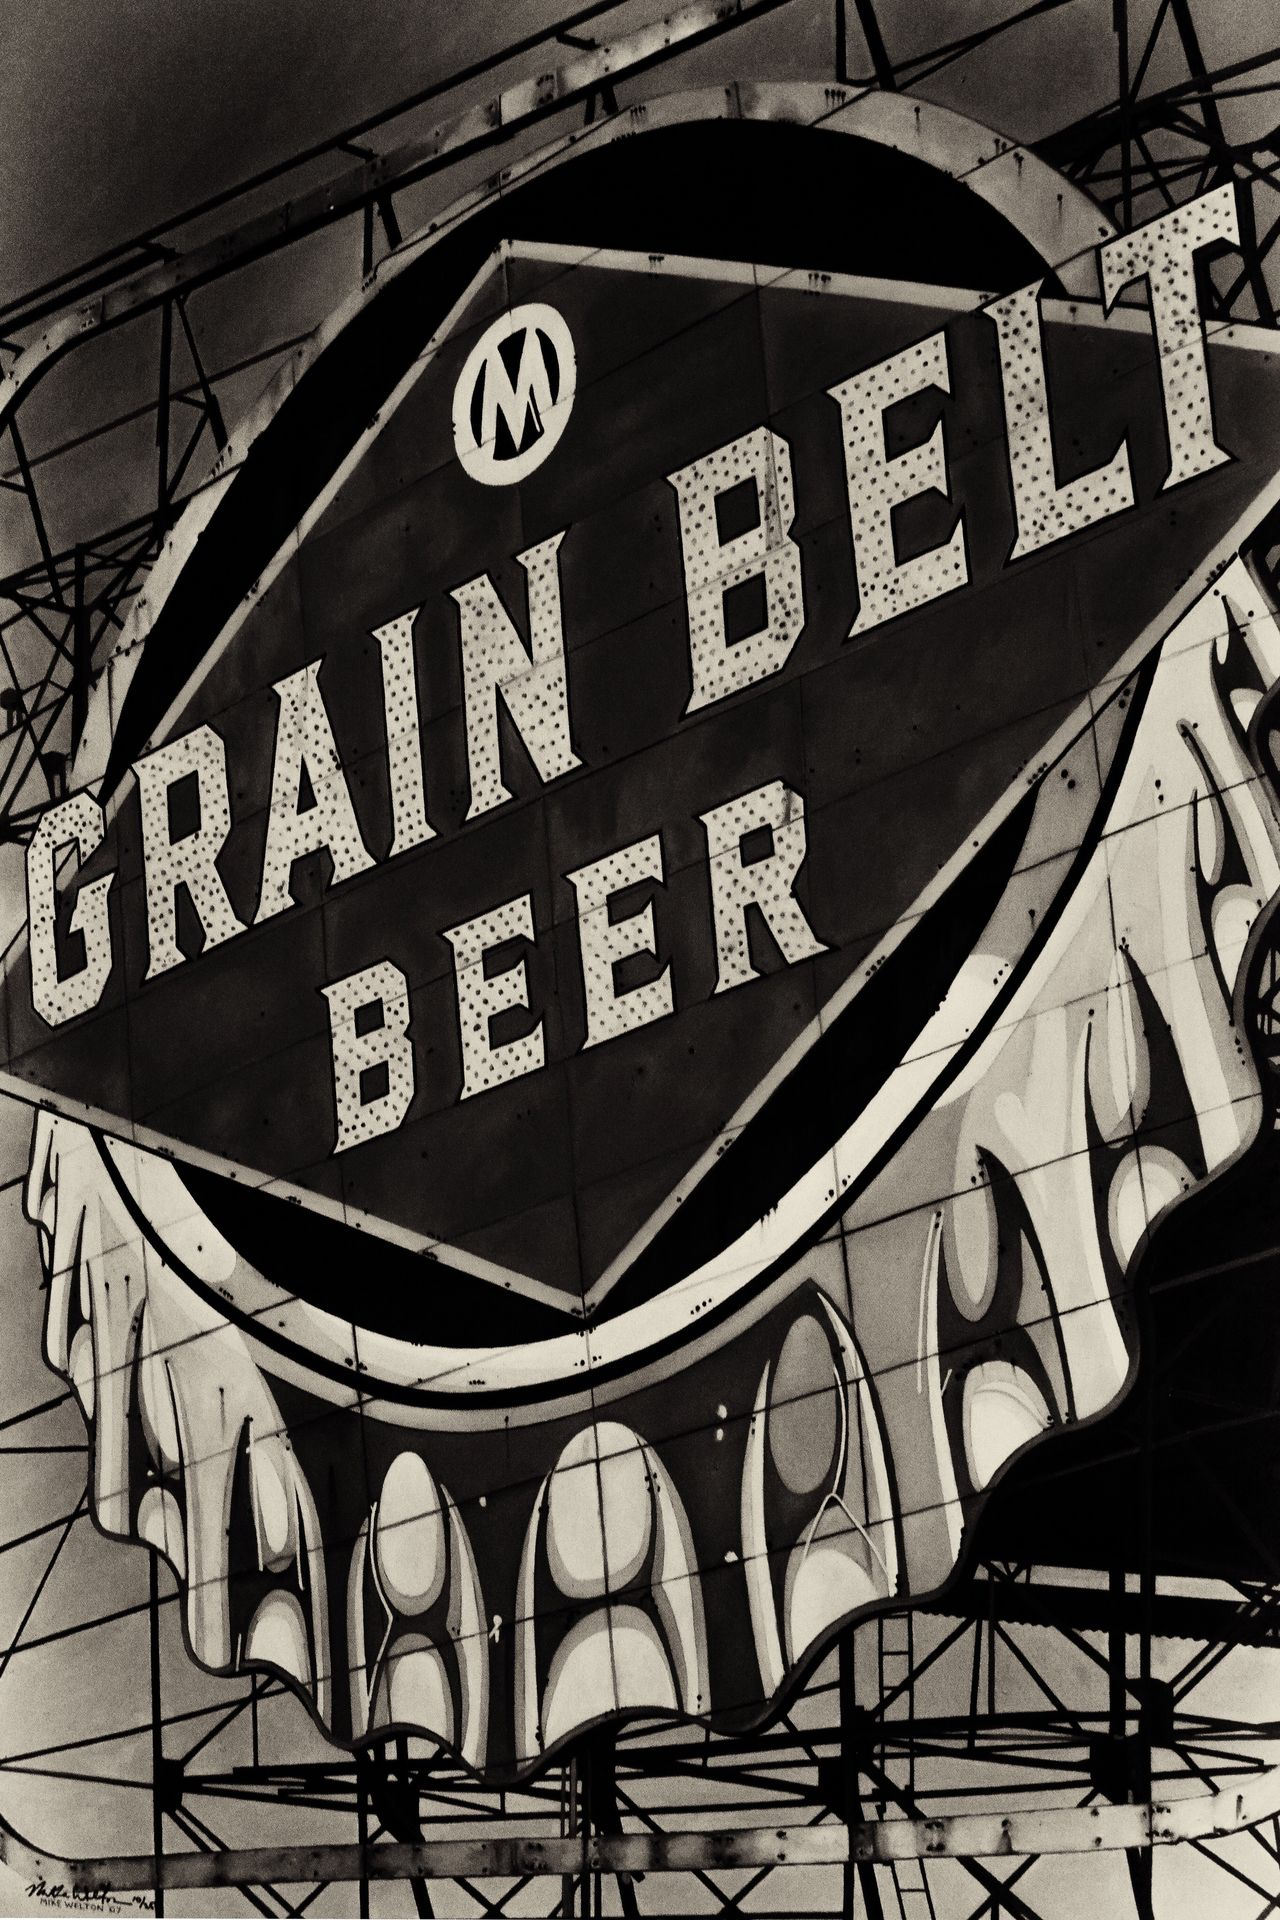 Grain Belt B&W Grain Belt Beer Blackandwhite Black And White Black & White High Contrast Painting Urban Urban Landscape Urbanphotography Cool Check This Out Sam Kratzer